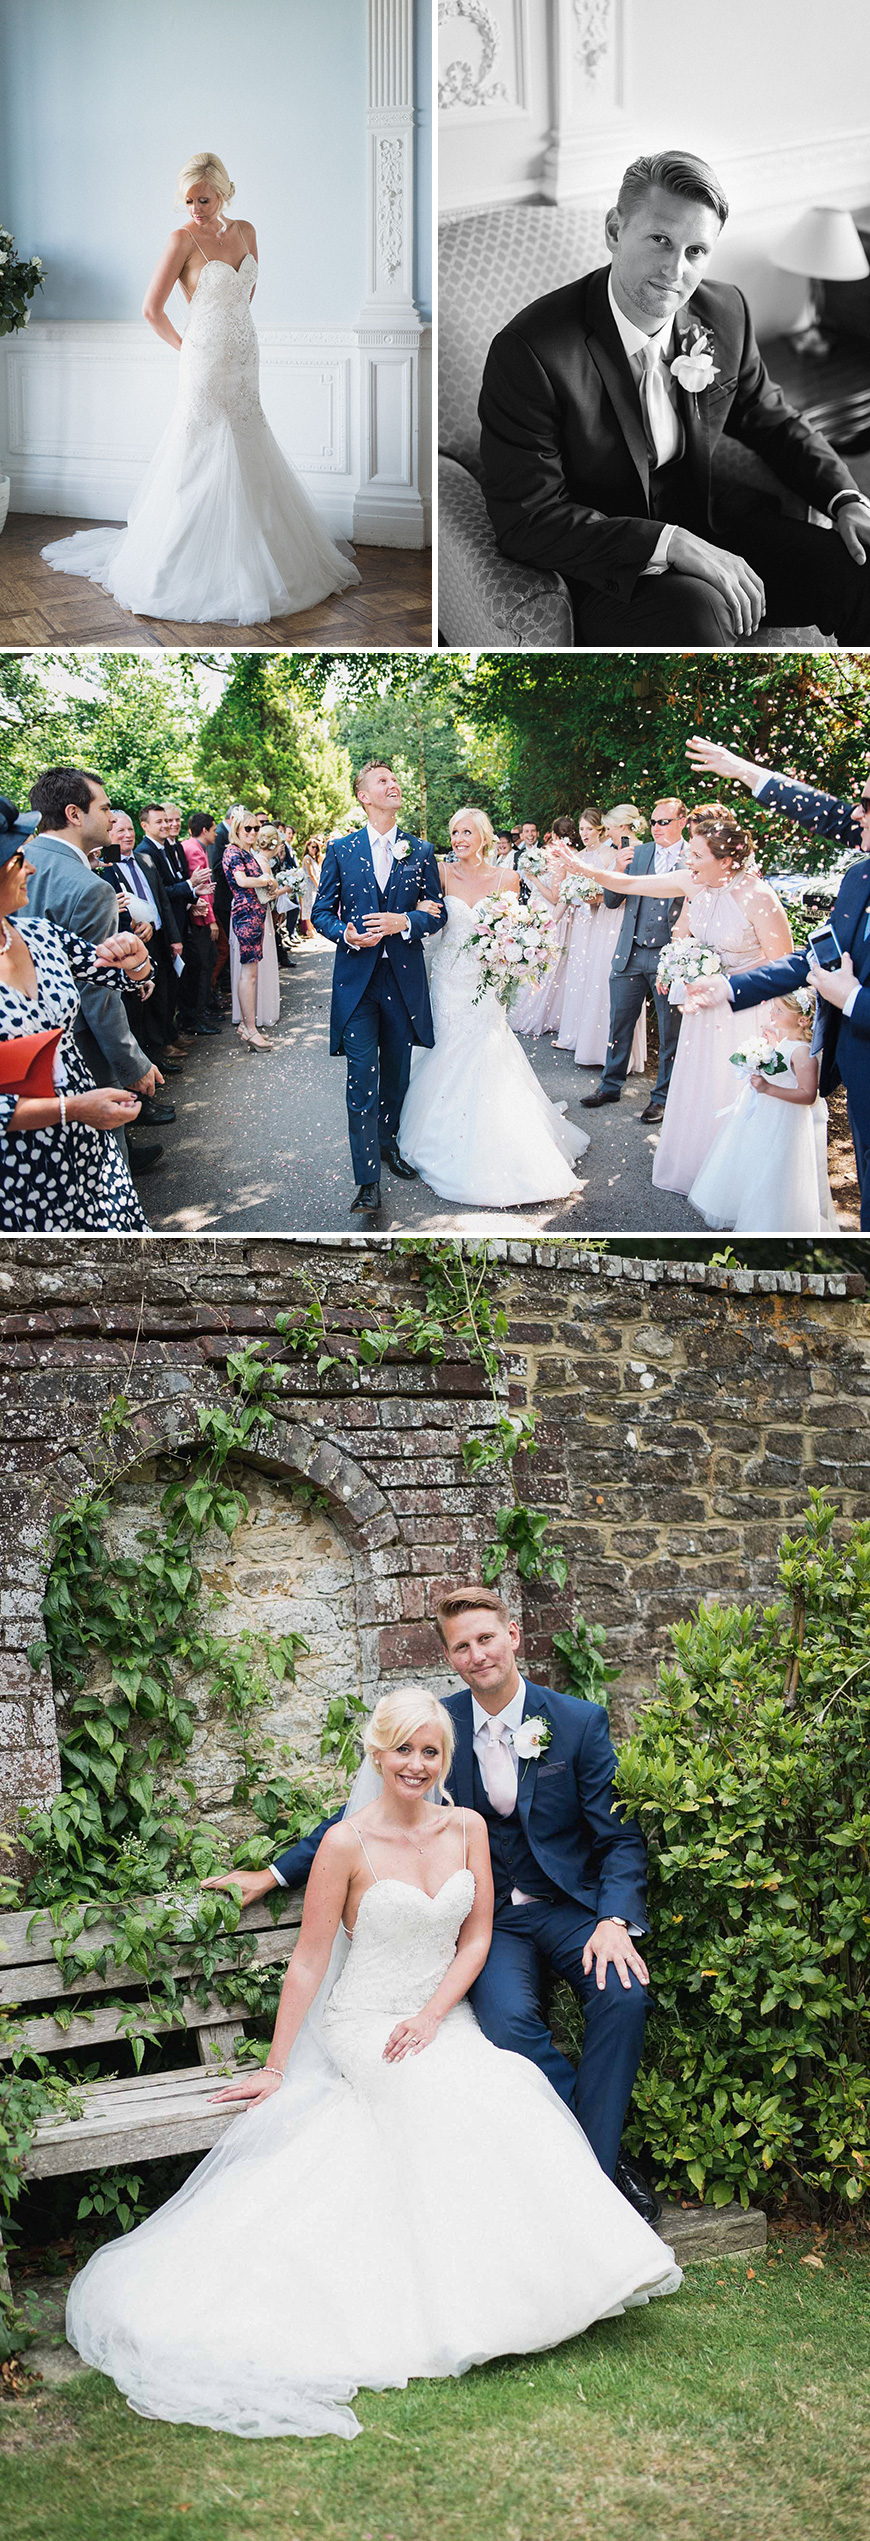 Real Wedding - Gemma and Jack's Fun-Filled Wedding At Frensham Heights | CHWV